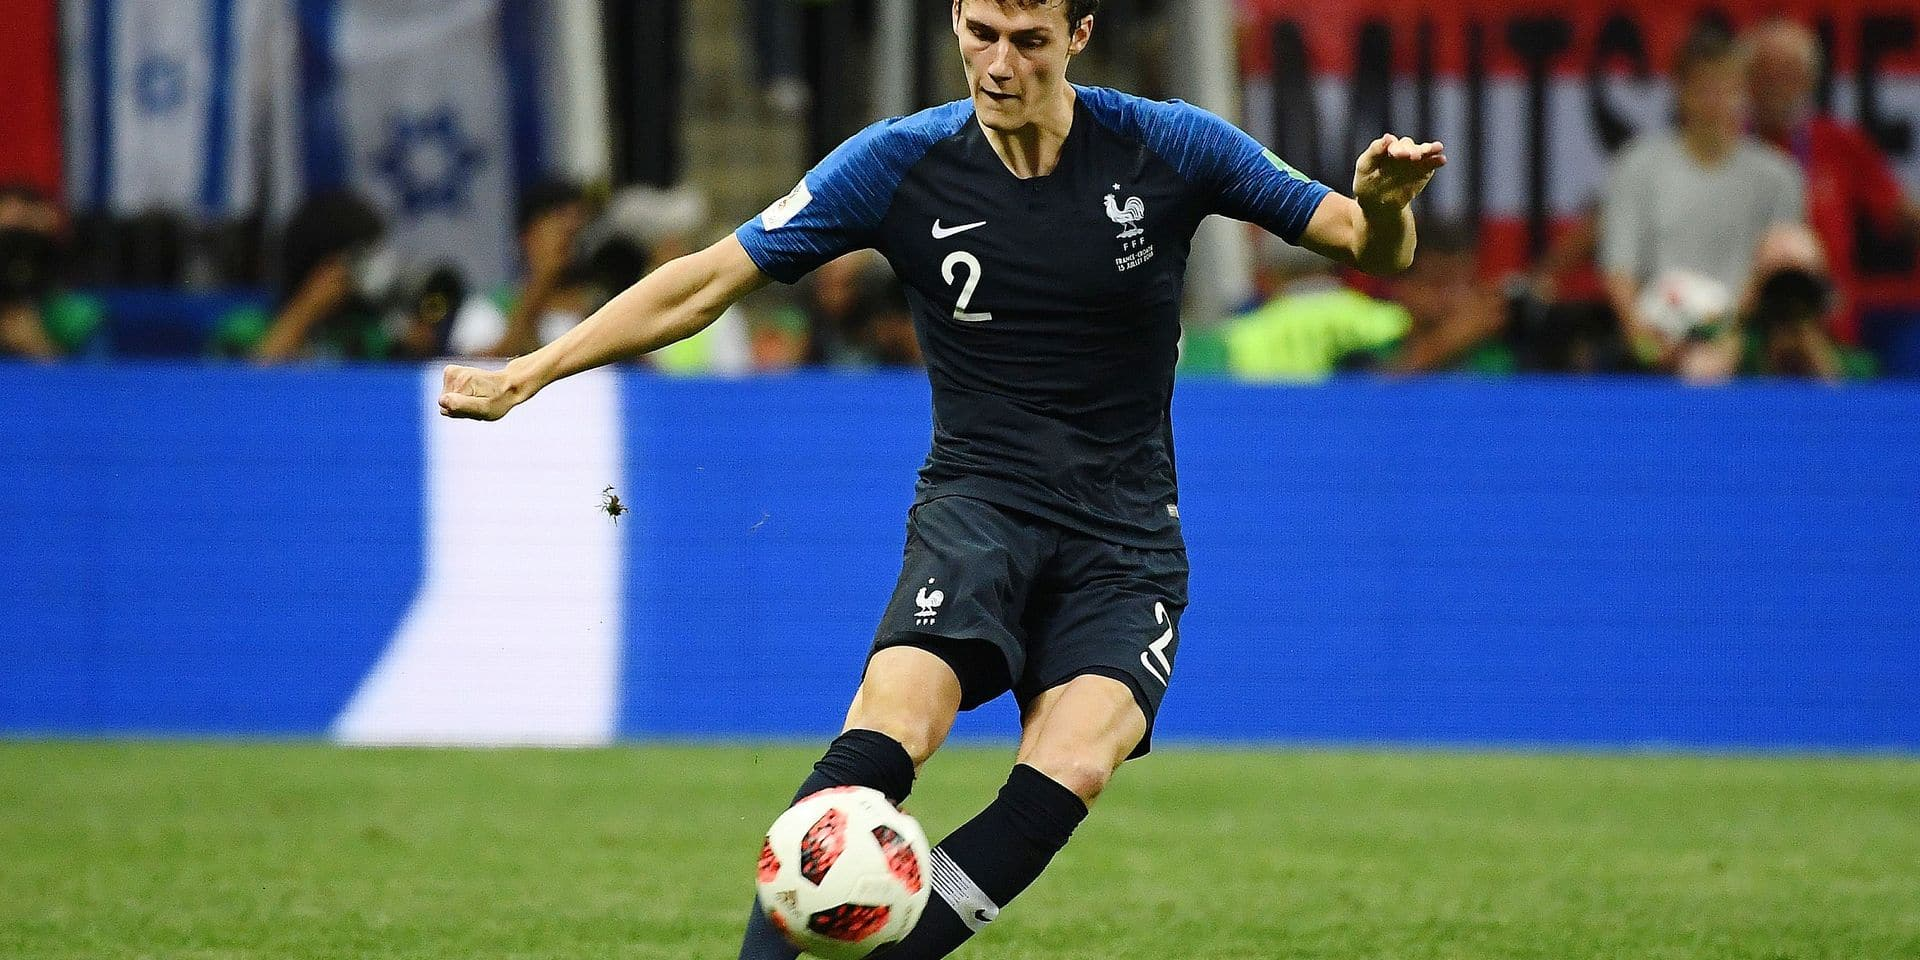 France's defender Benjamin Pavard crosses the ball during the Russia 2018 World Cup final football match between France and Croatia at the Luzhniki Stadium in Moscow on July 15, 2018. / AFP PHOTO / Jewel SAMAD / RESTRICTED TO EDITORIAL USE - NO MOBILE PUSH ALERTS/DOWNLOADS